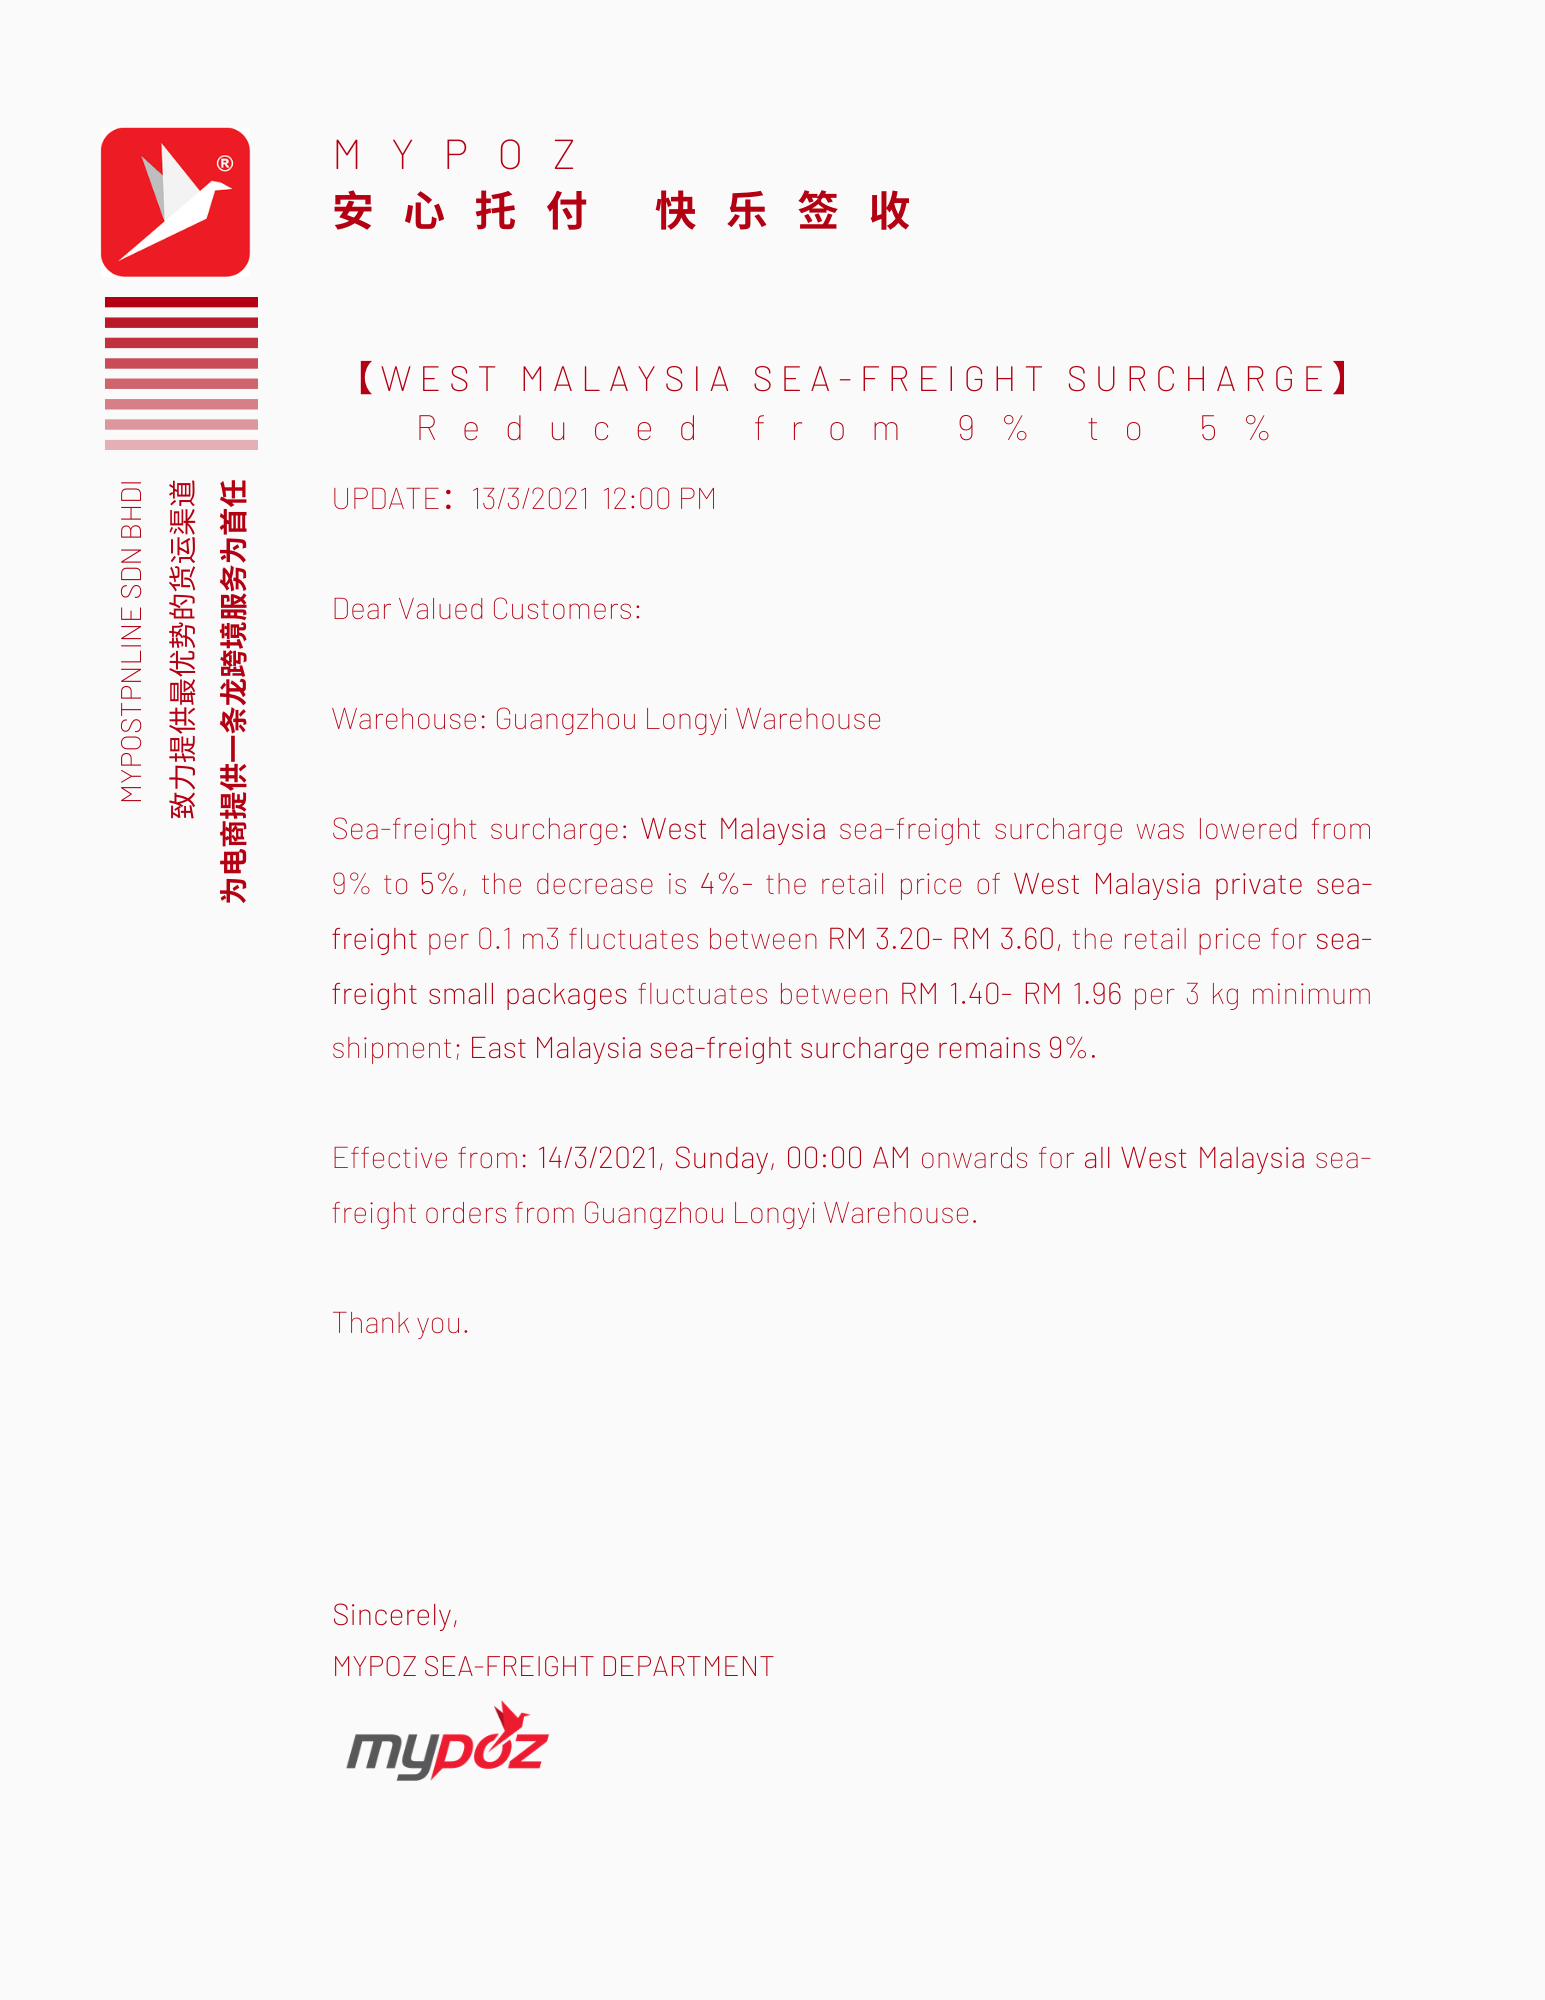 【NOTICE】WEST MALAYSIA SEA-FREIGHT SURCHARGE